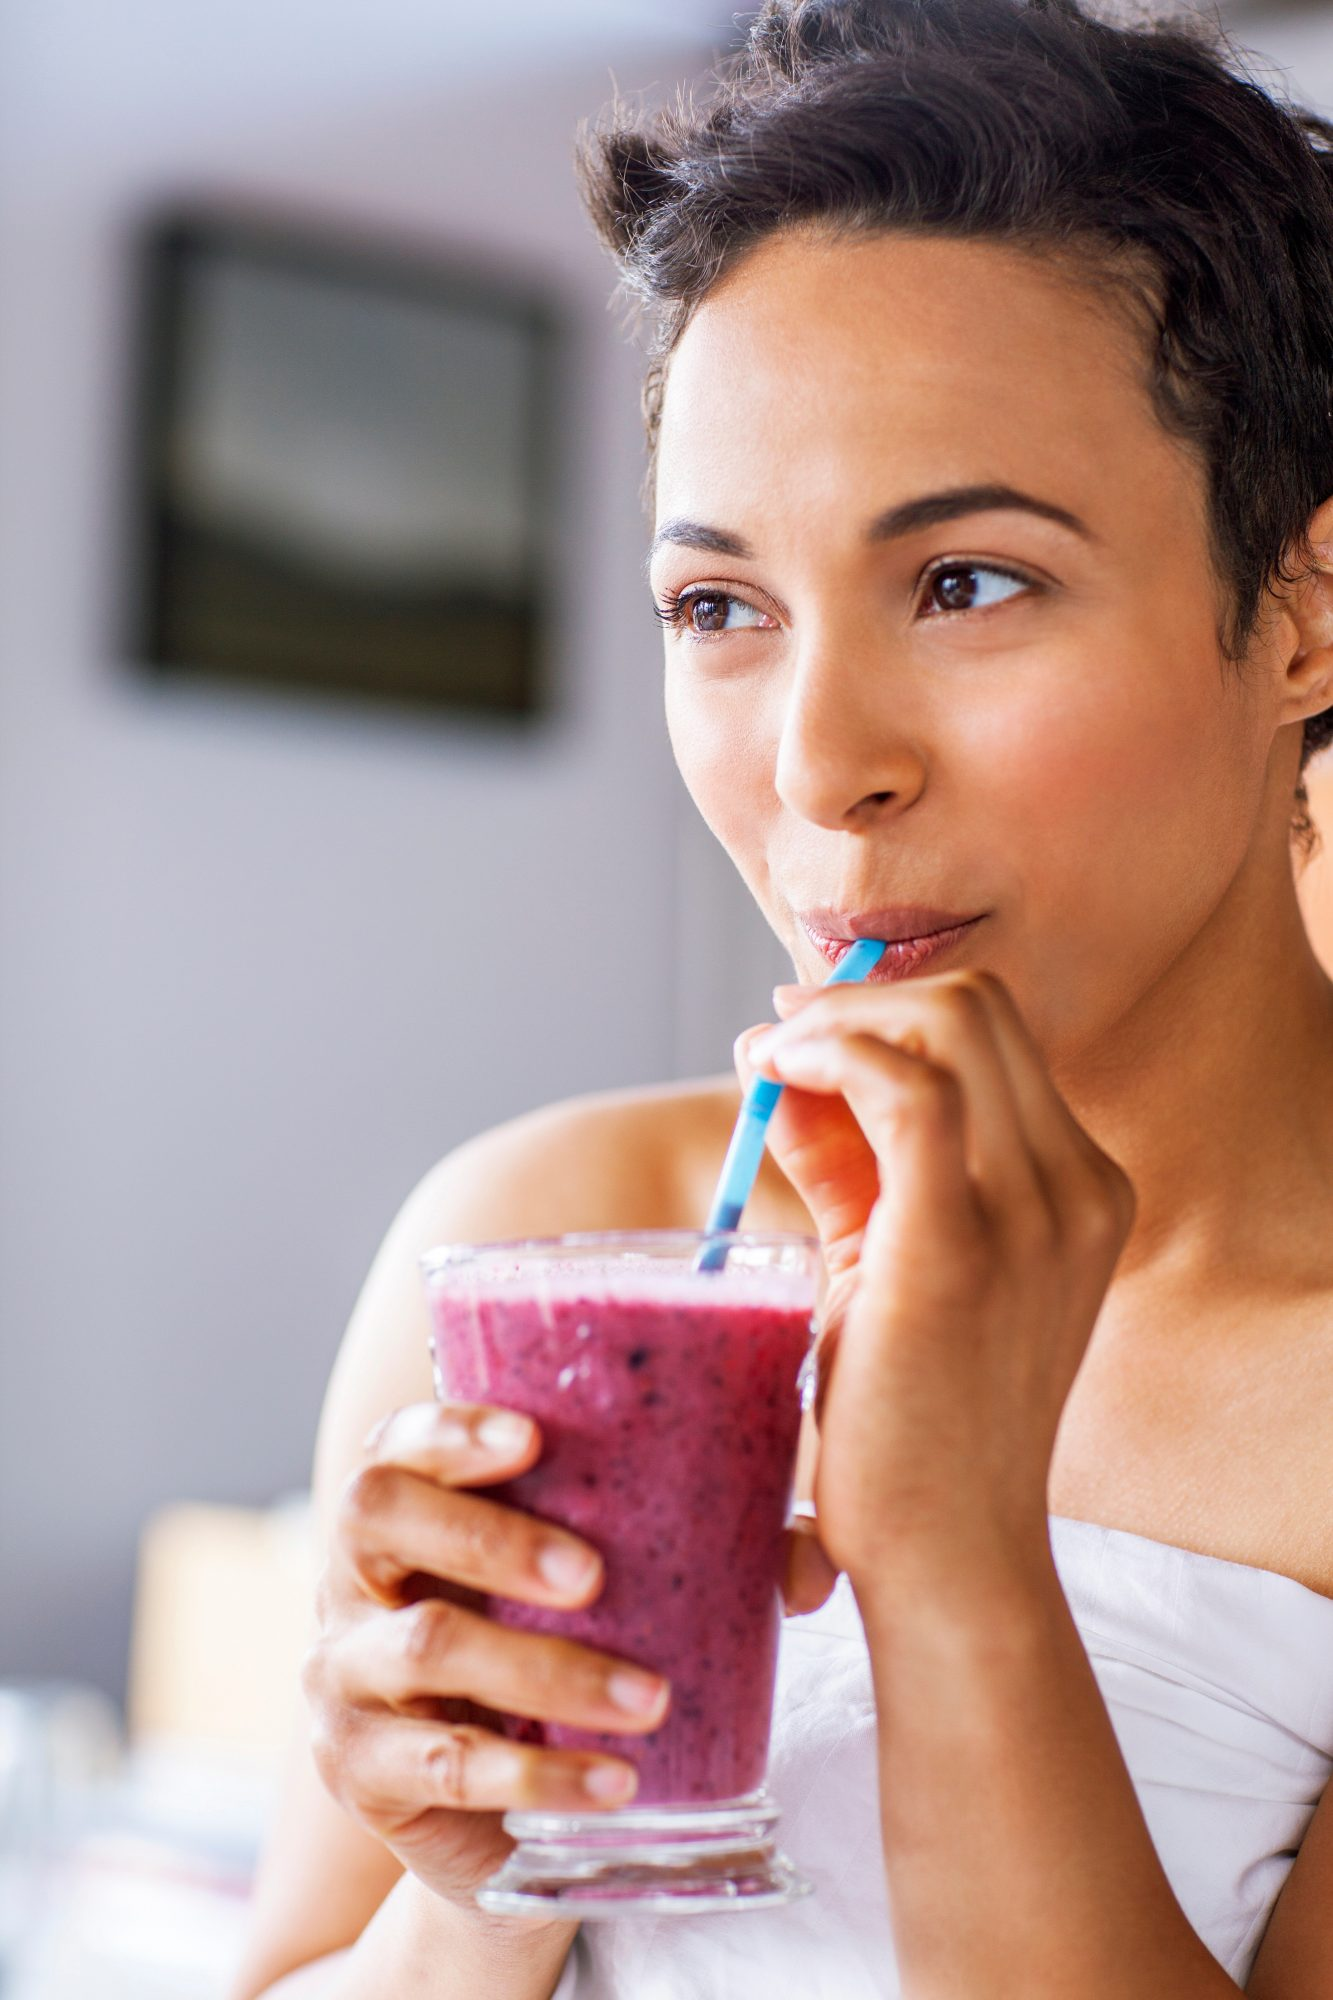 Myth: Meal-replacement shakes should be avoided at all costs